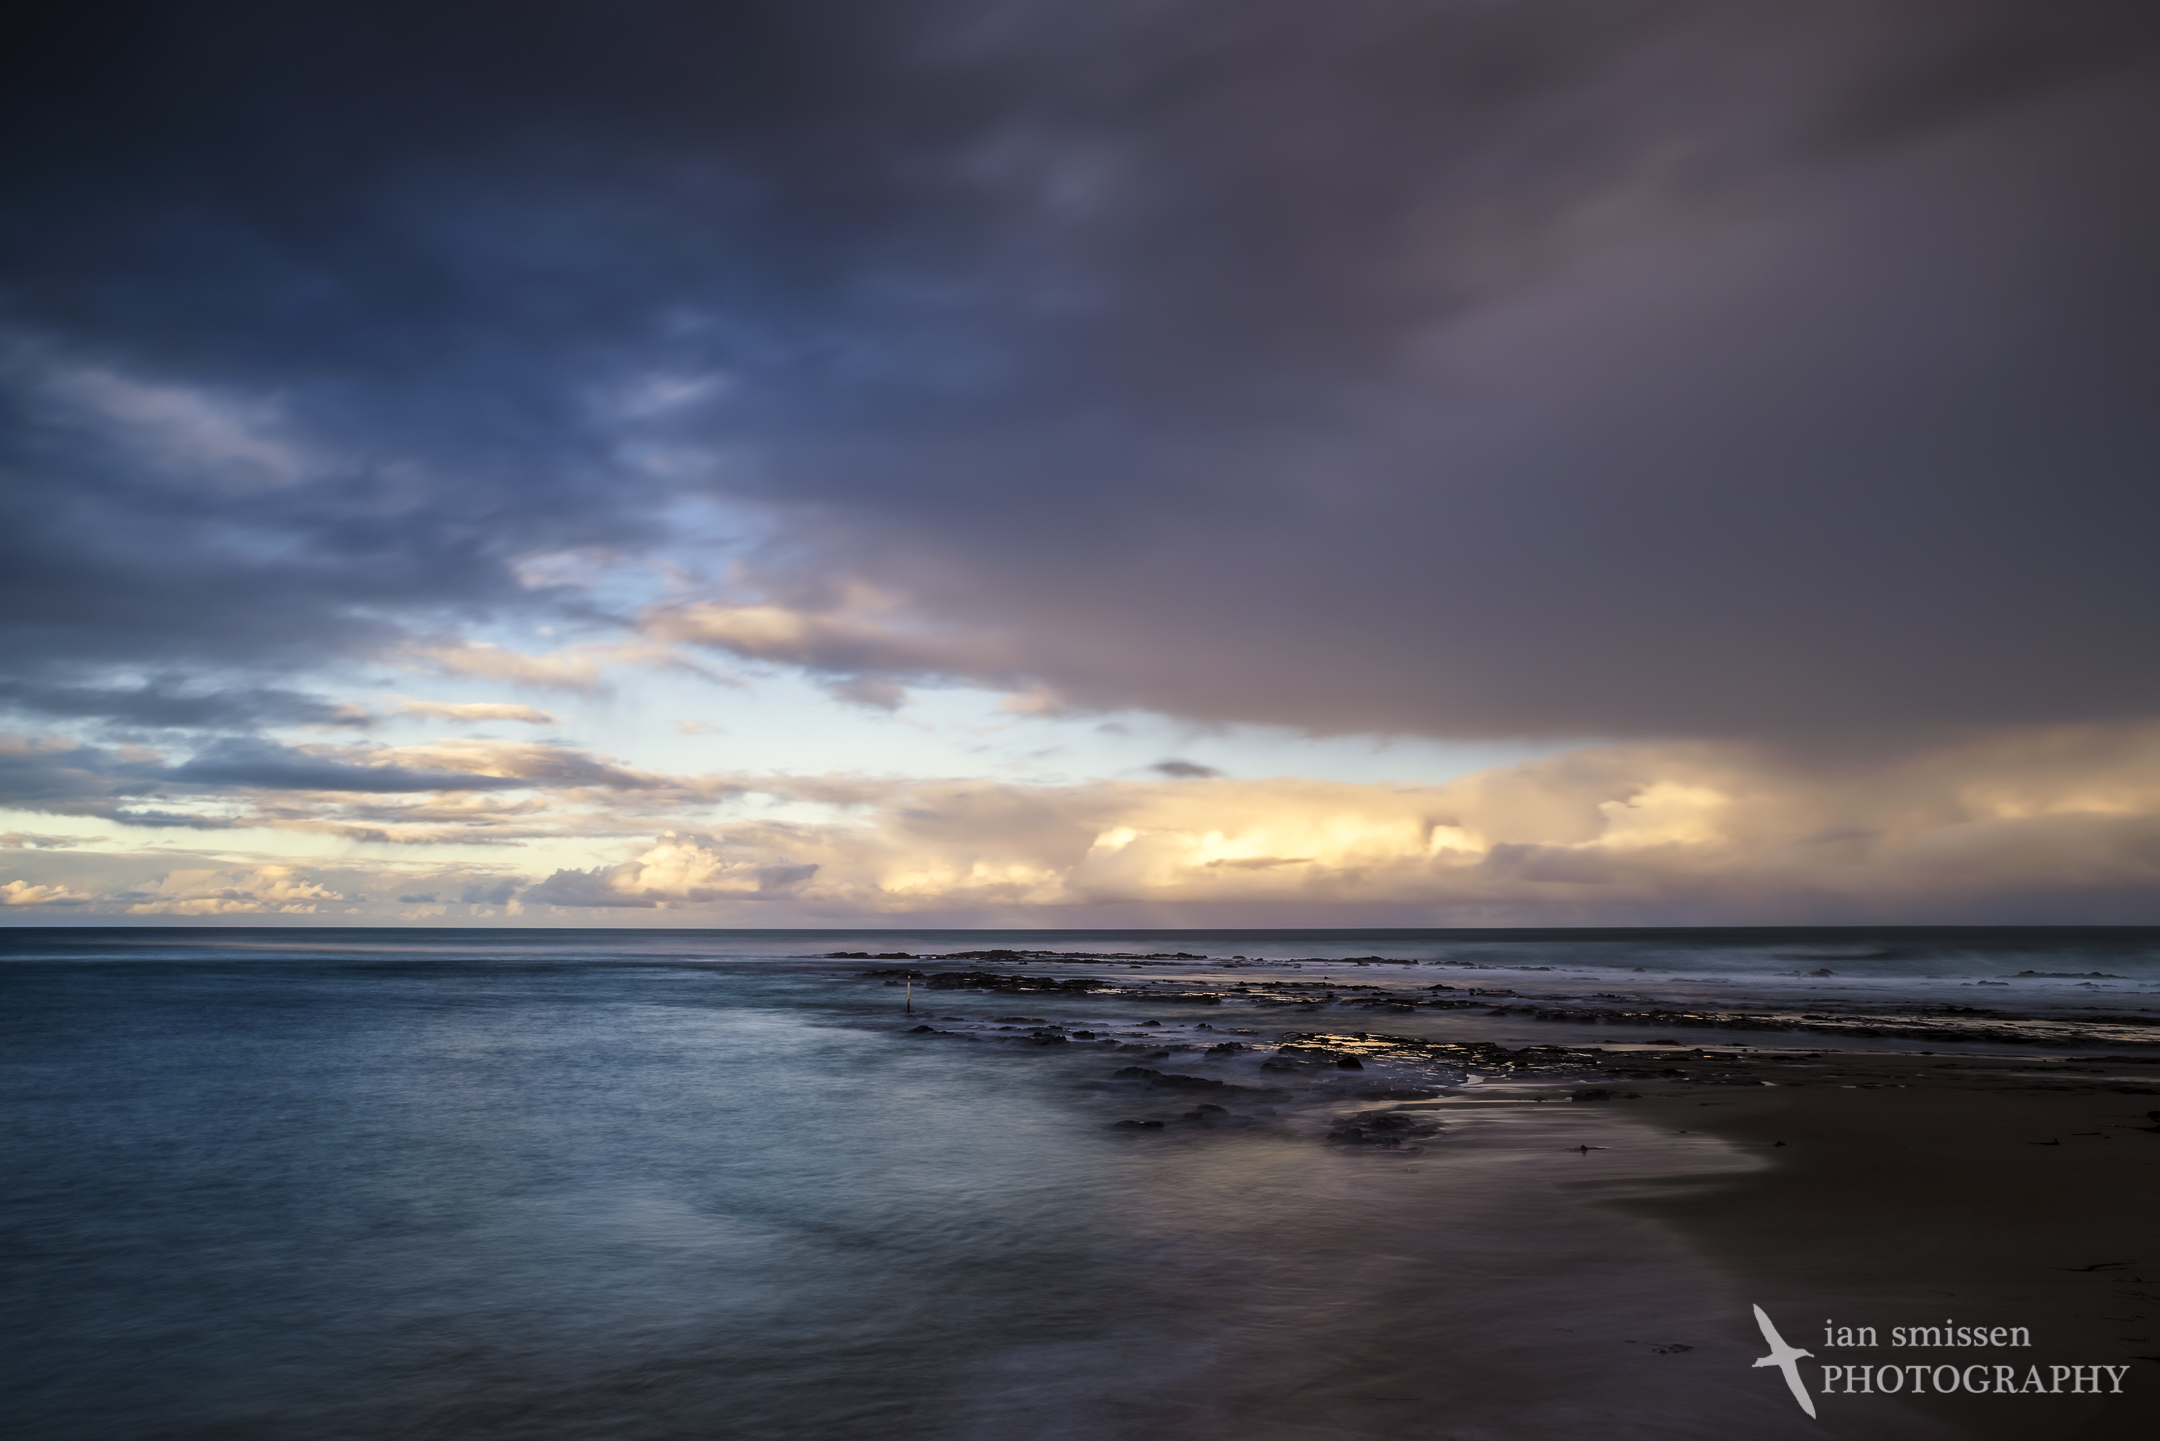 Approaching storm at sunset